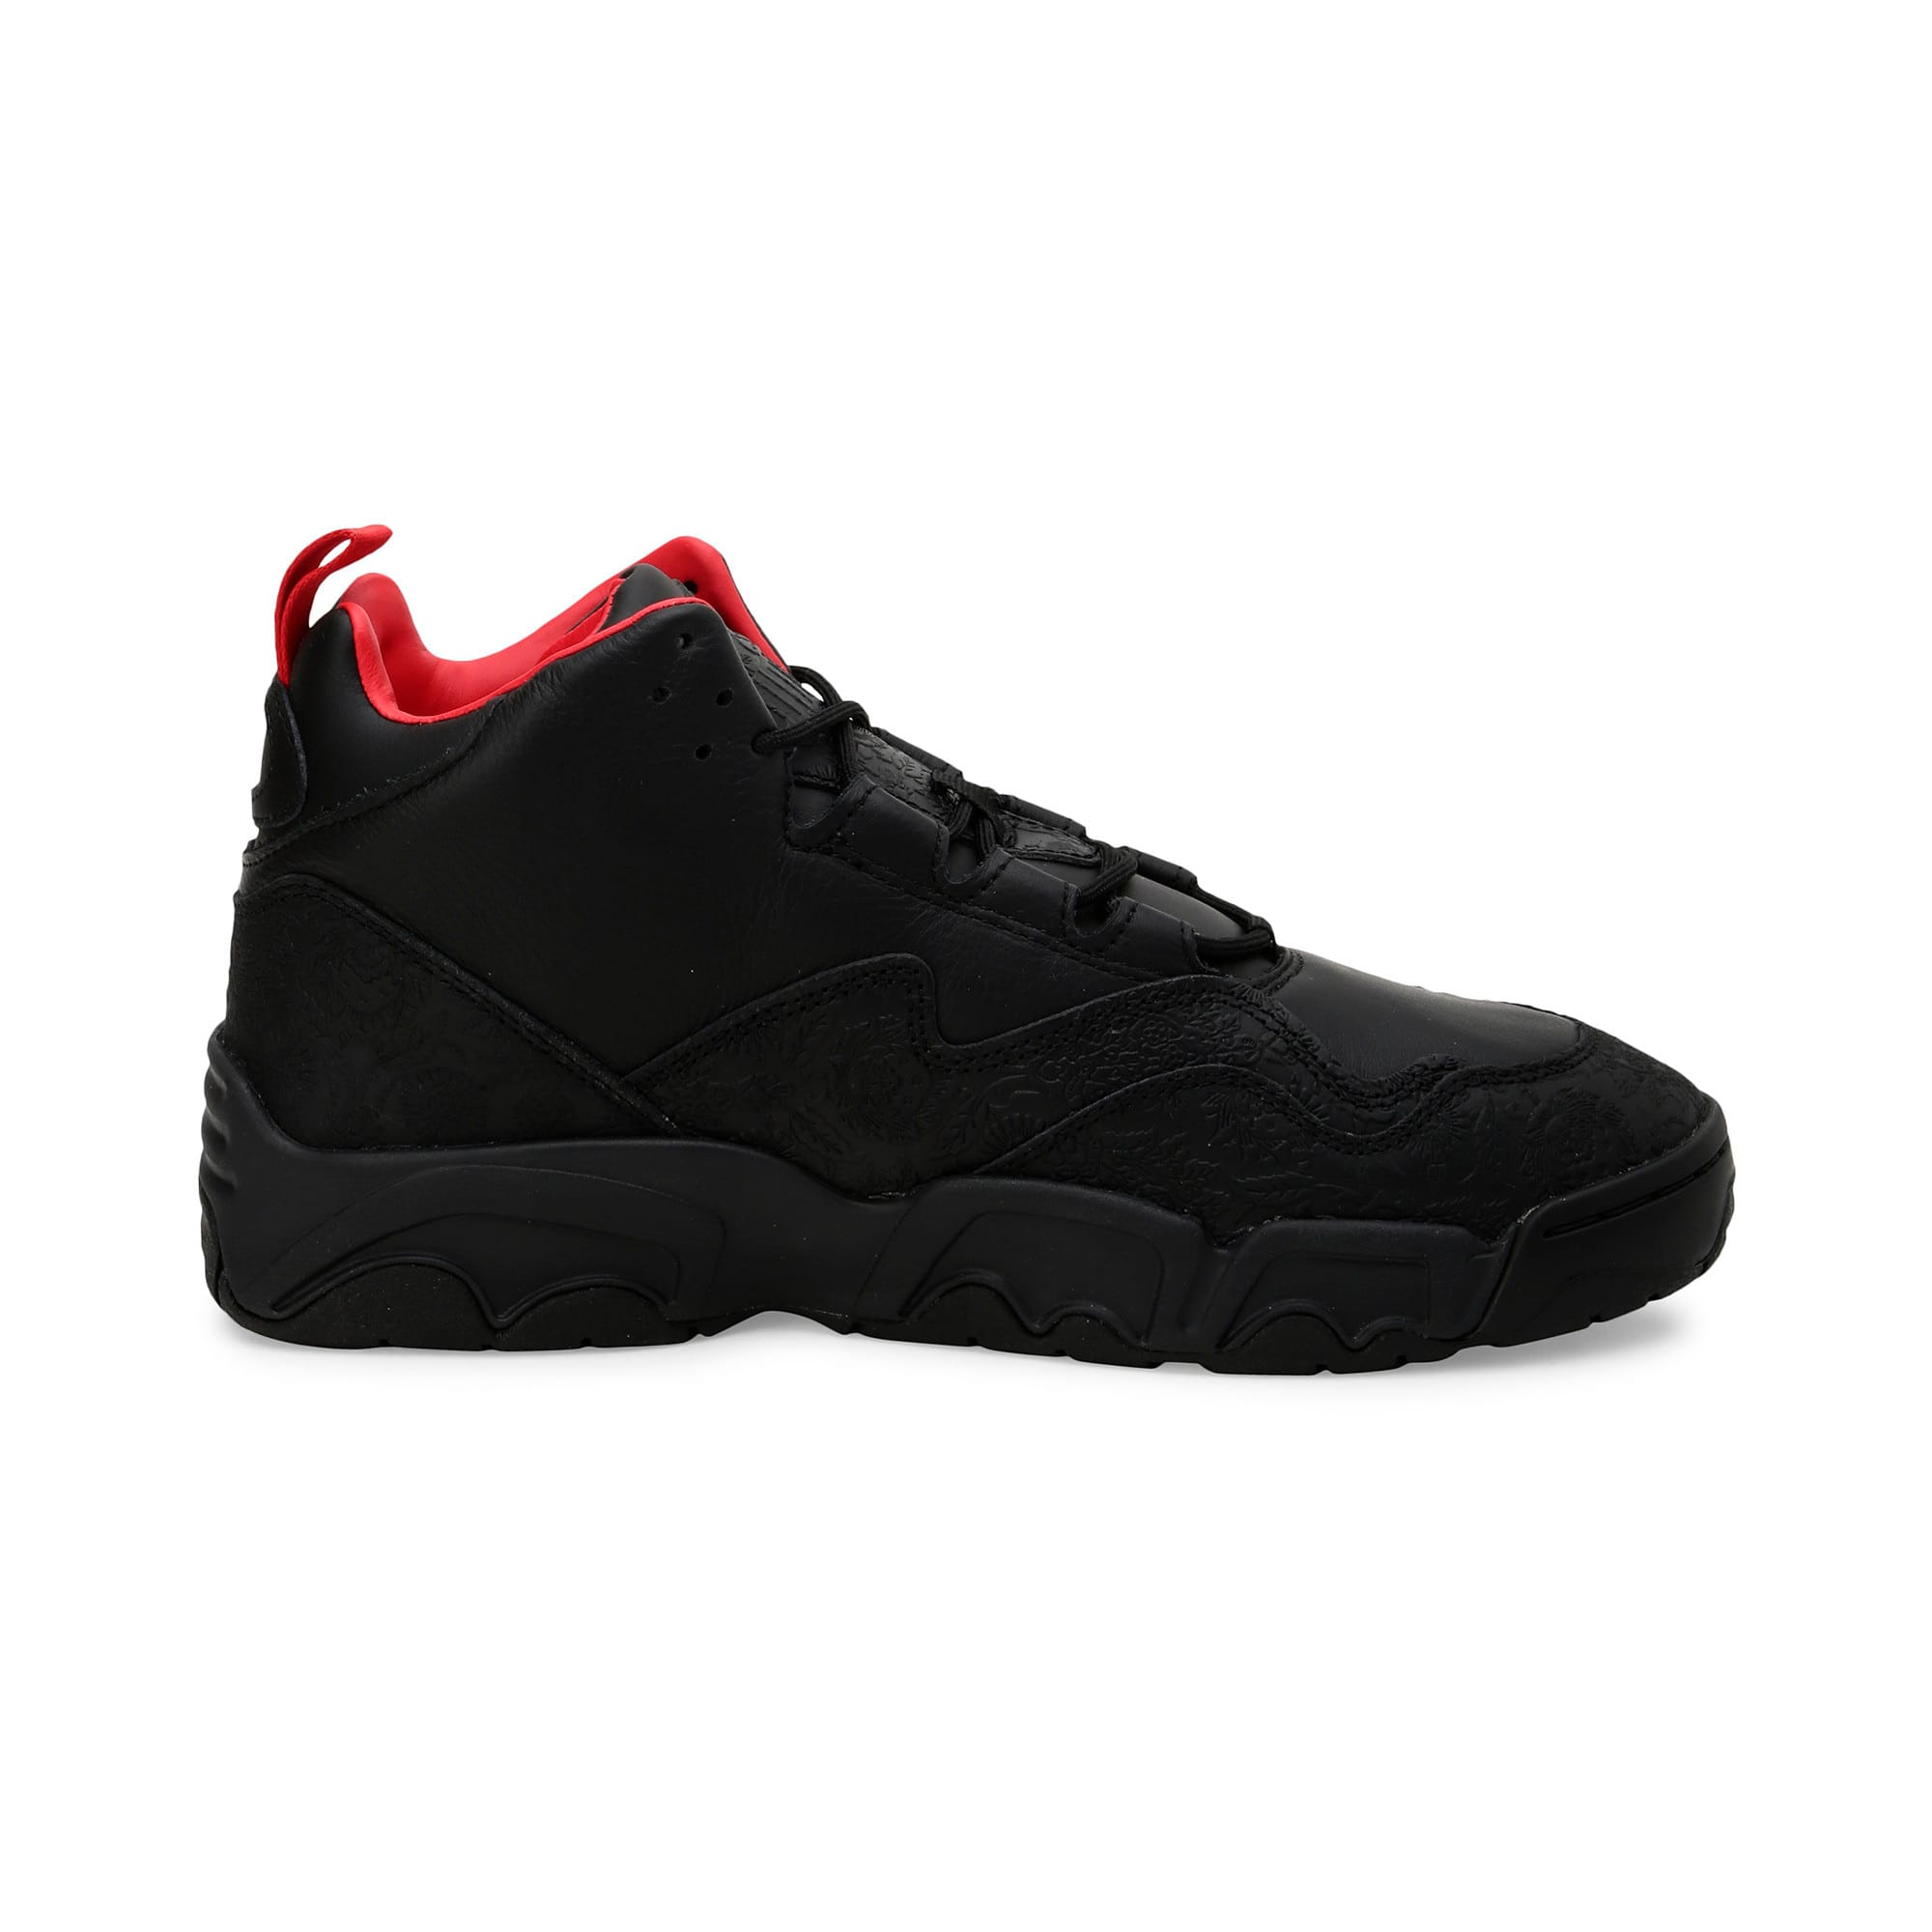 Thumbnail 6 of Source Mid World Cup Trainers, P Blk-Bronze-High Risk Red, medium-IND